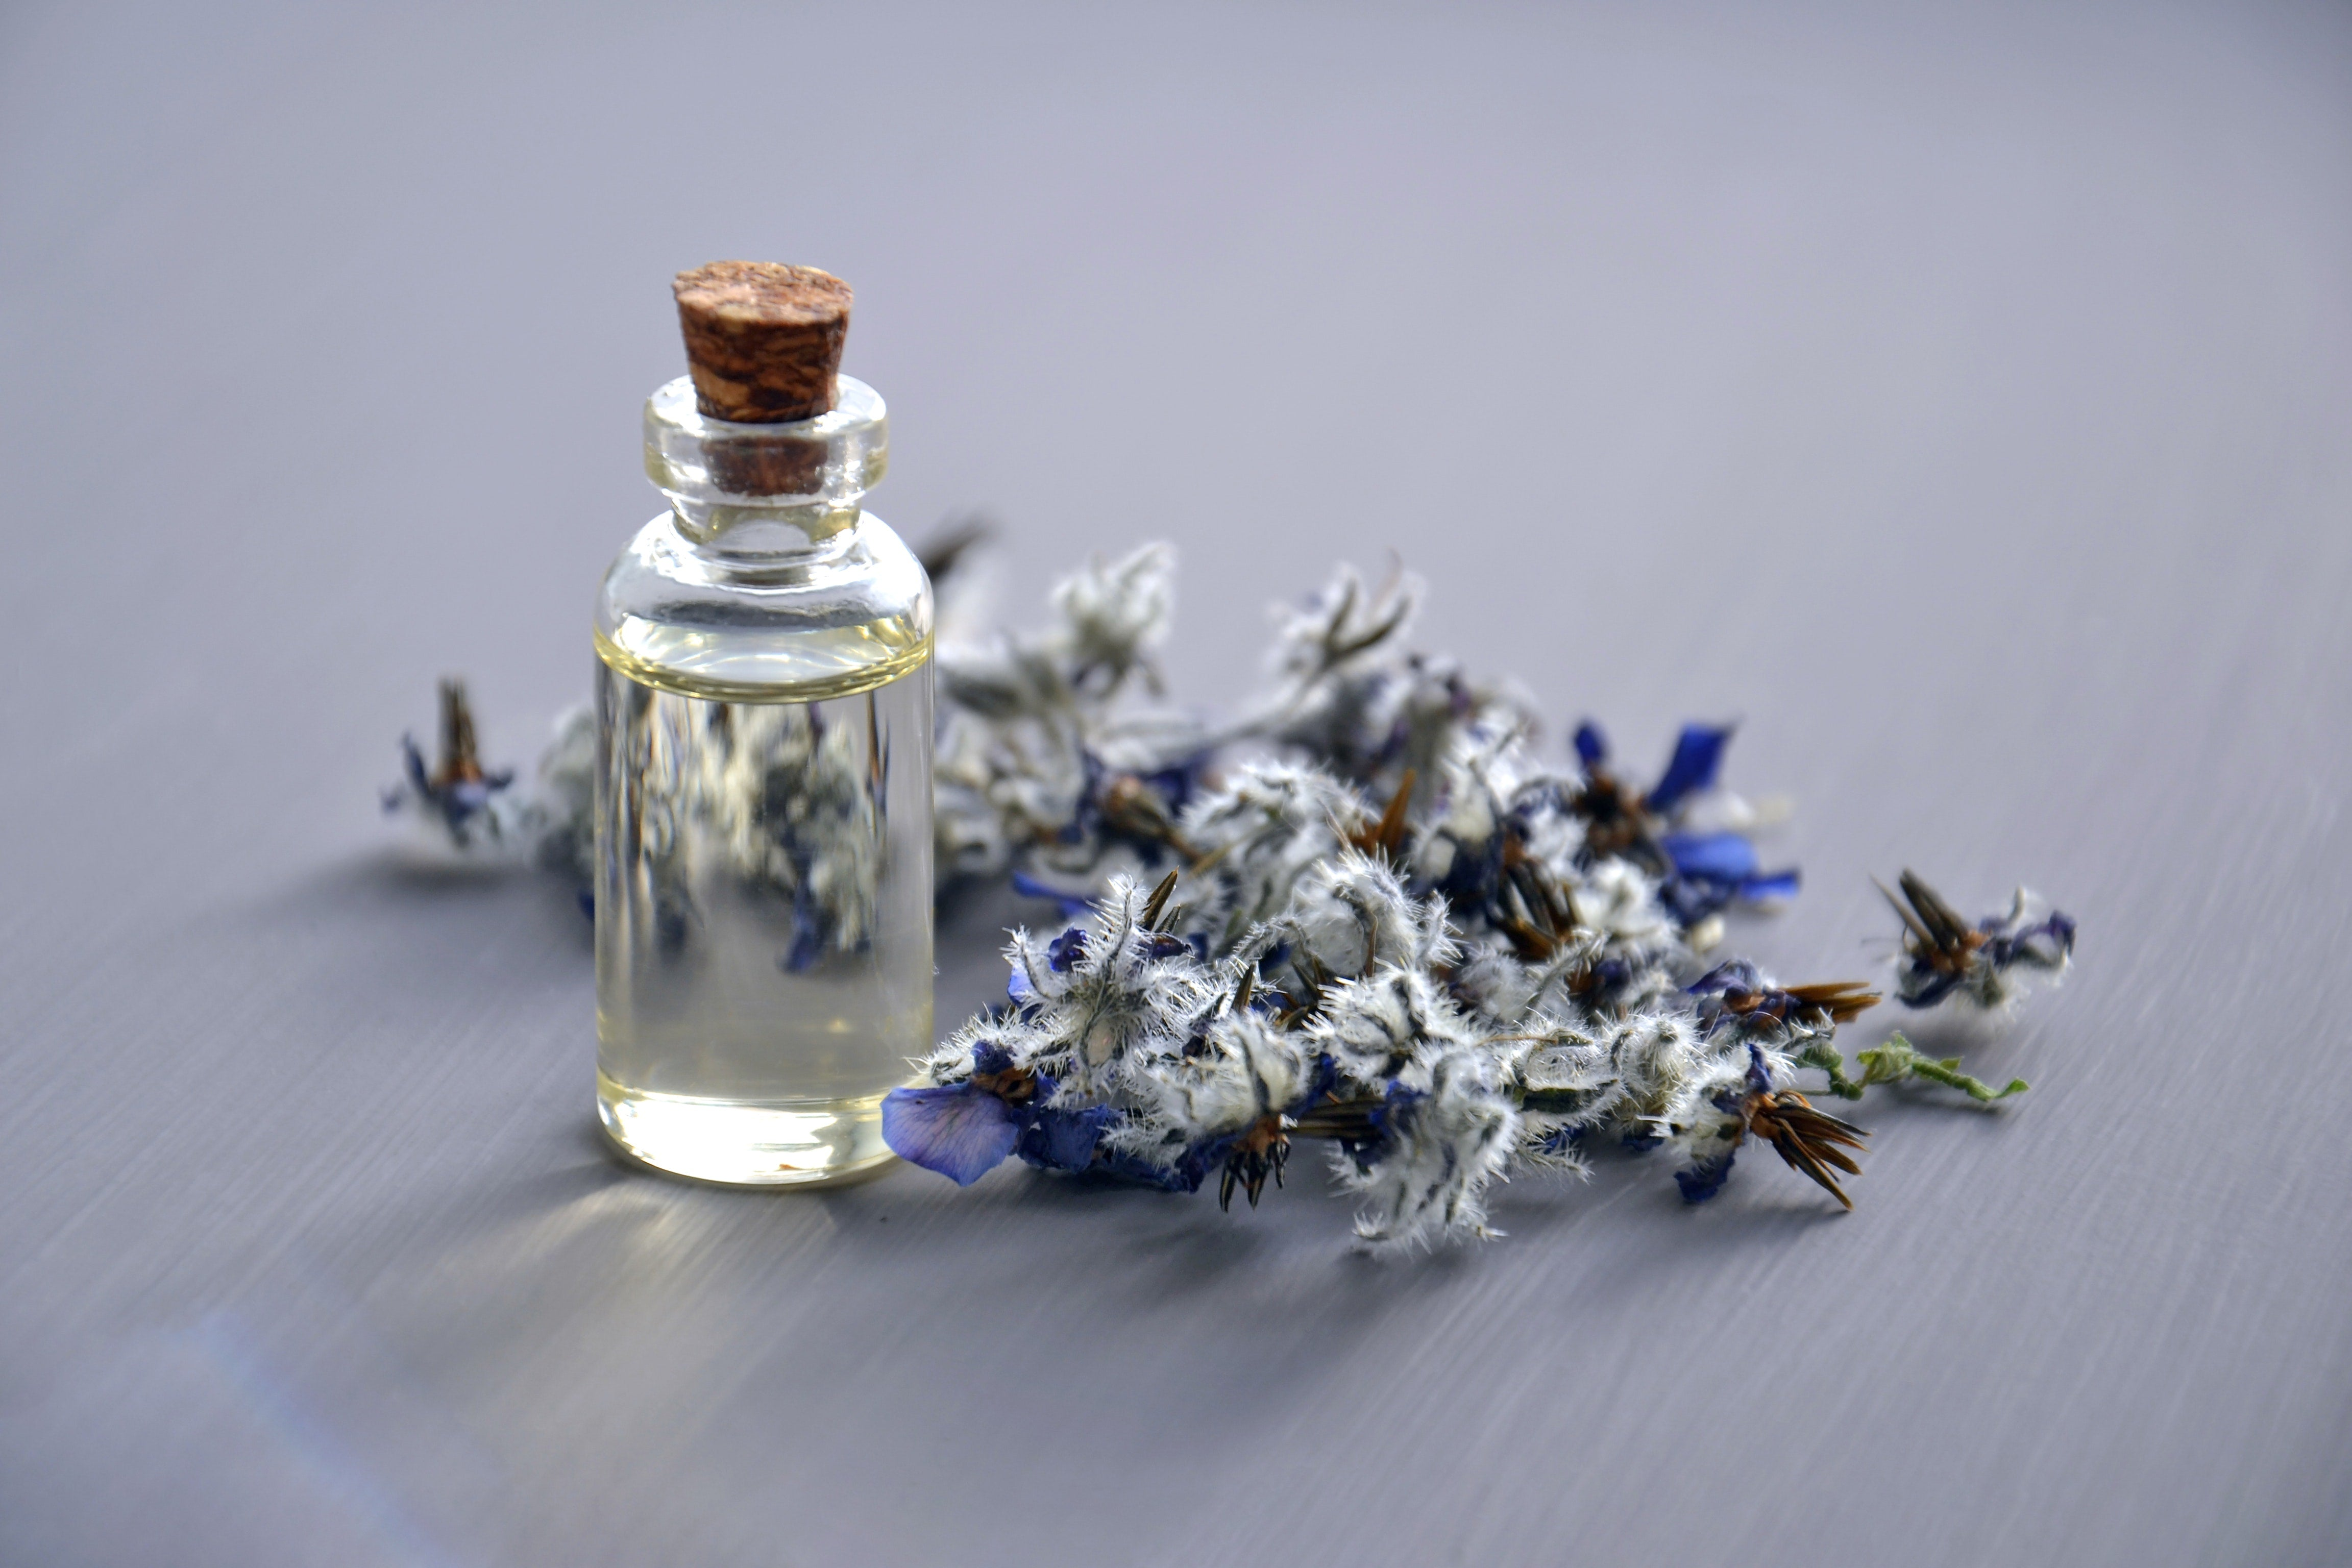 5 Essential Oils for Aromatherapy